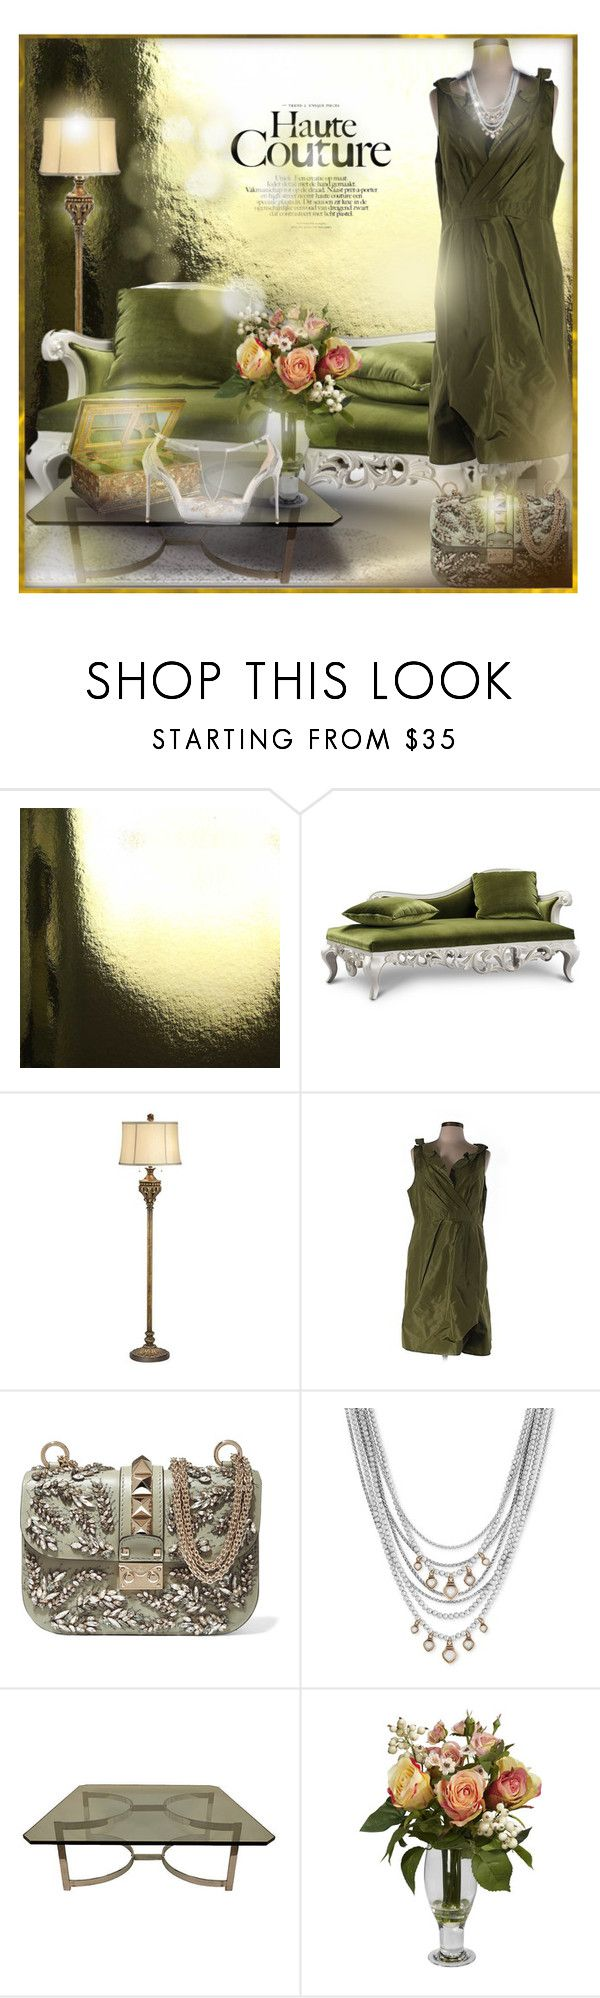 Green Day by falticska-cerasella on Polyvore featuring interior, interiors, interior design, Casa, home decor, interior decorating, Claudette, Lumière, Burke Decor and Nearly Natural